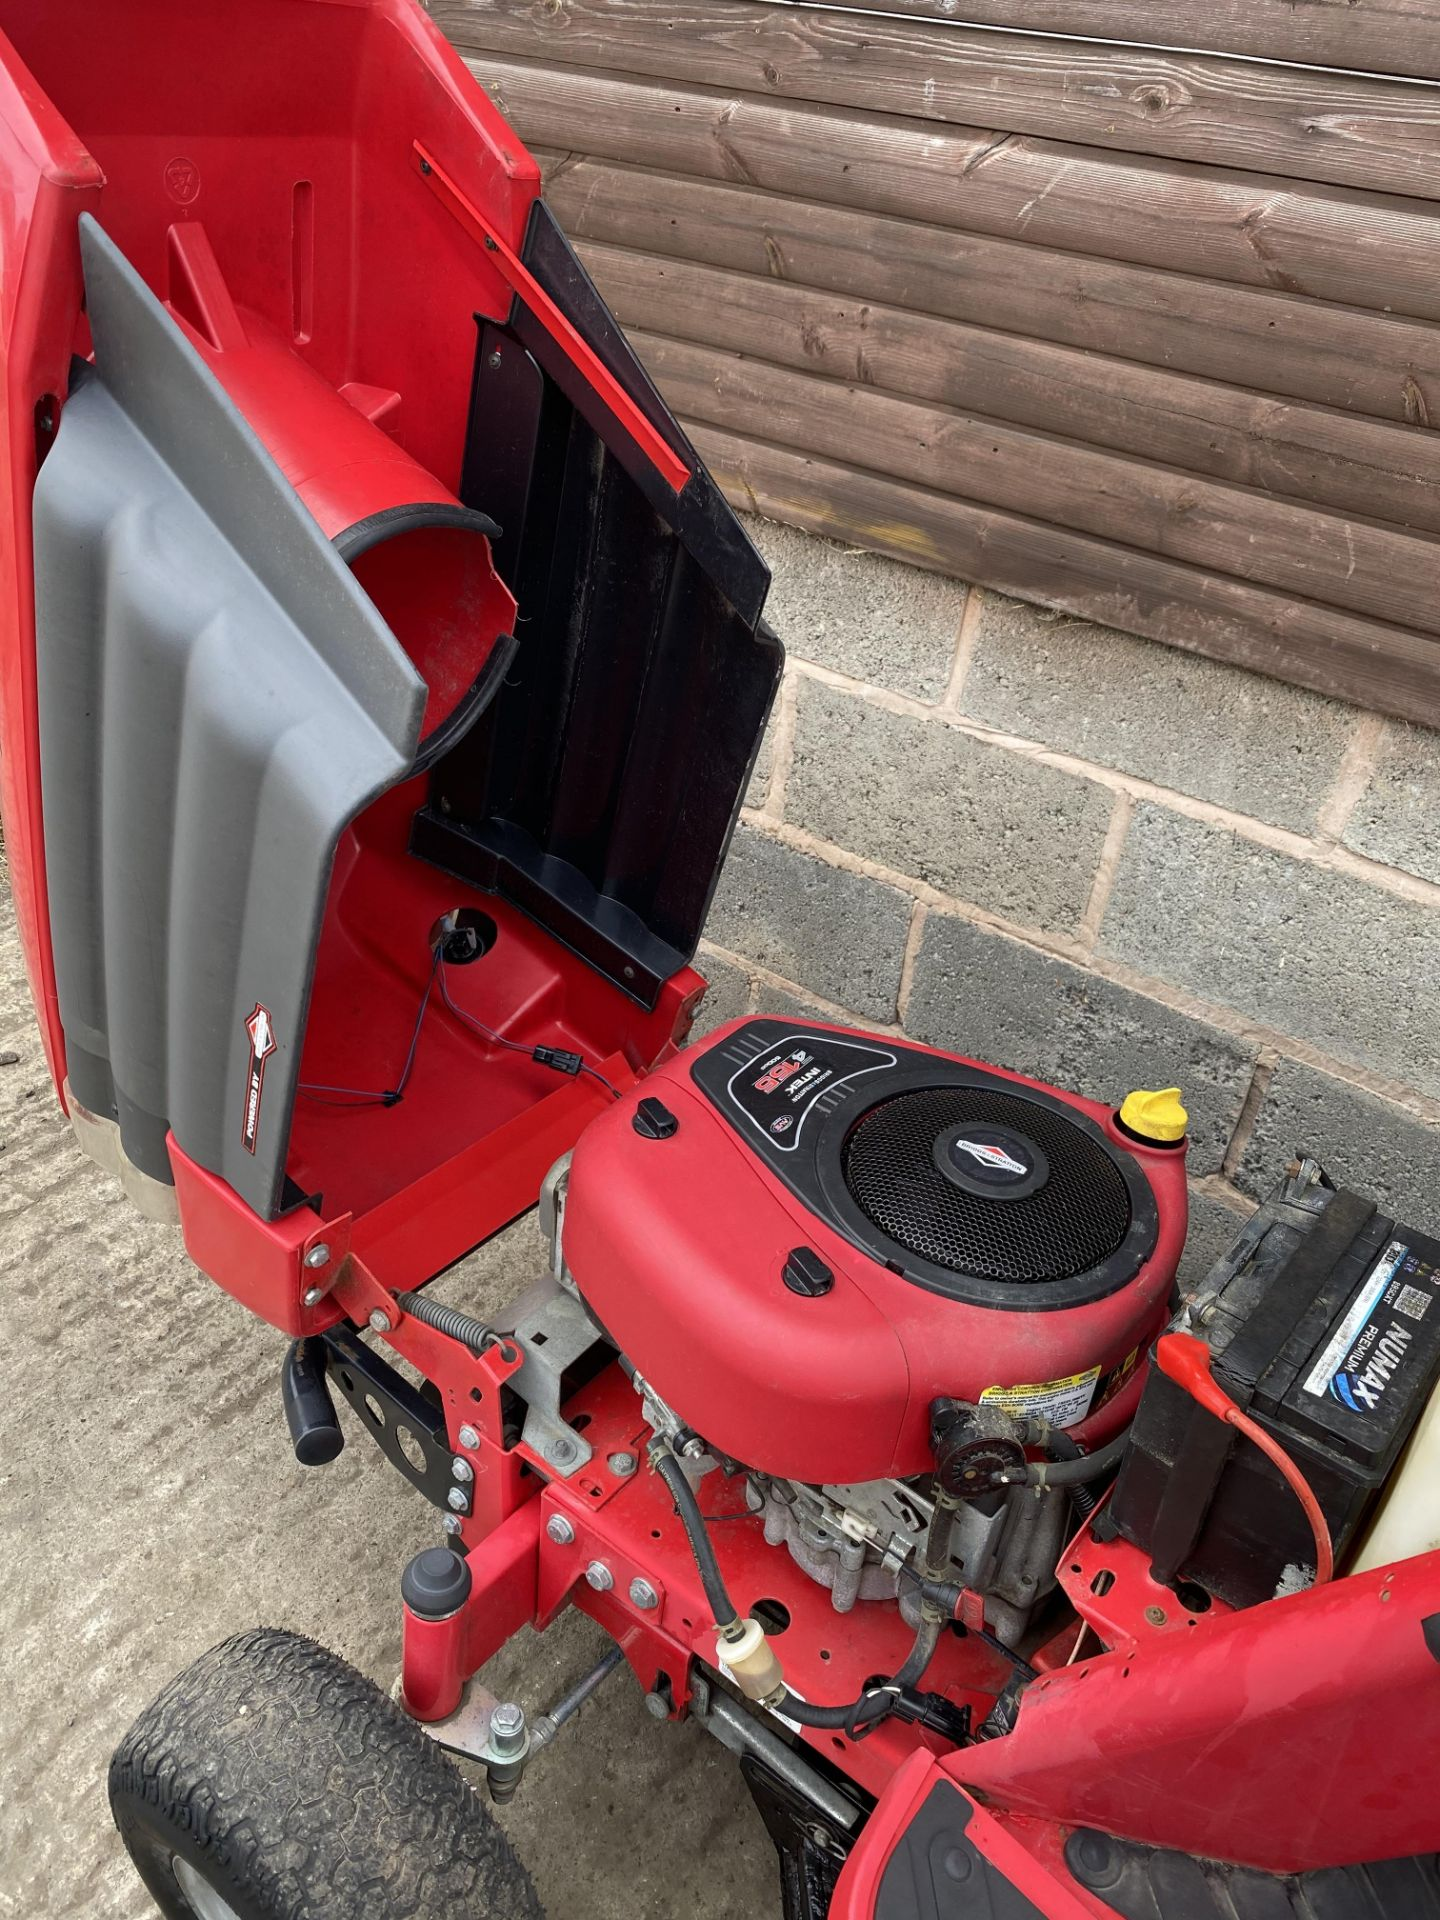 WESTWOOD S1500 RIDE ON LAWN MOWER, STARTS, RUNS AND DRIVES, HYDROSTATIC DRIVE *PLUS VAT* - Image 4 of 4